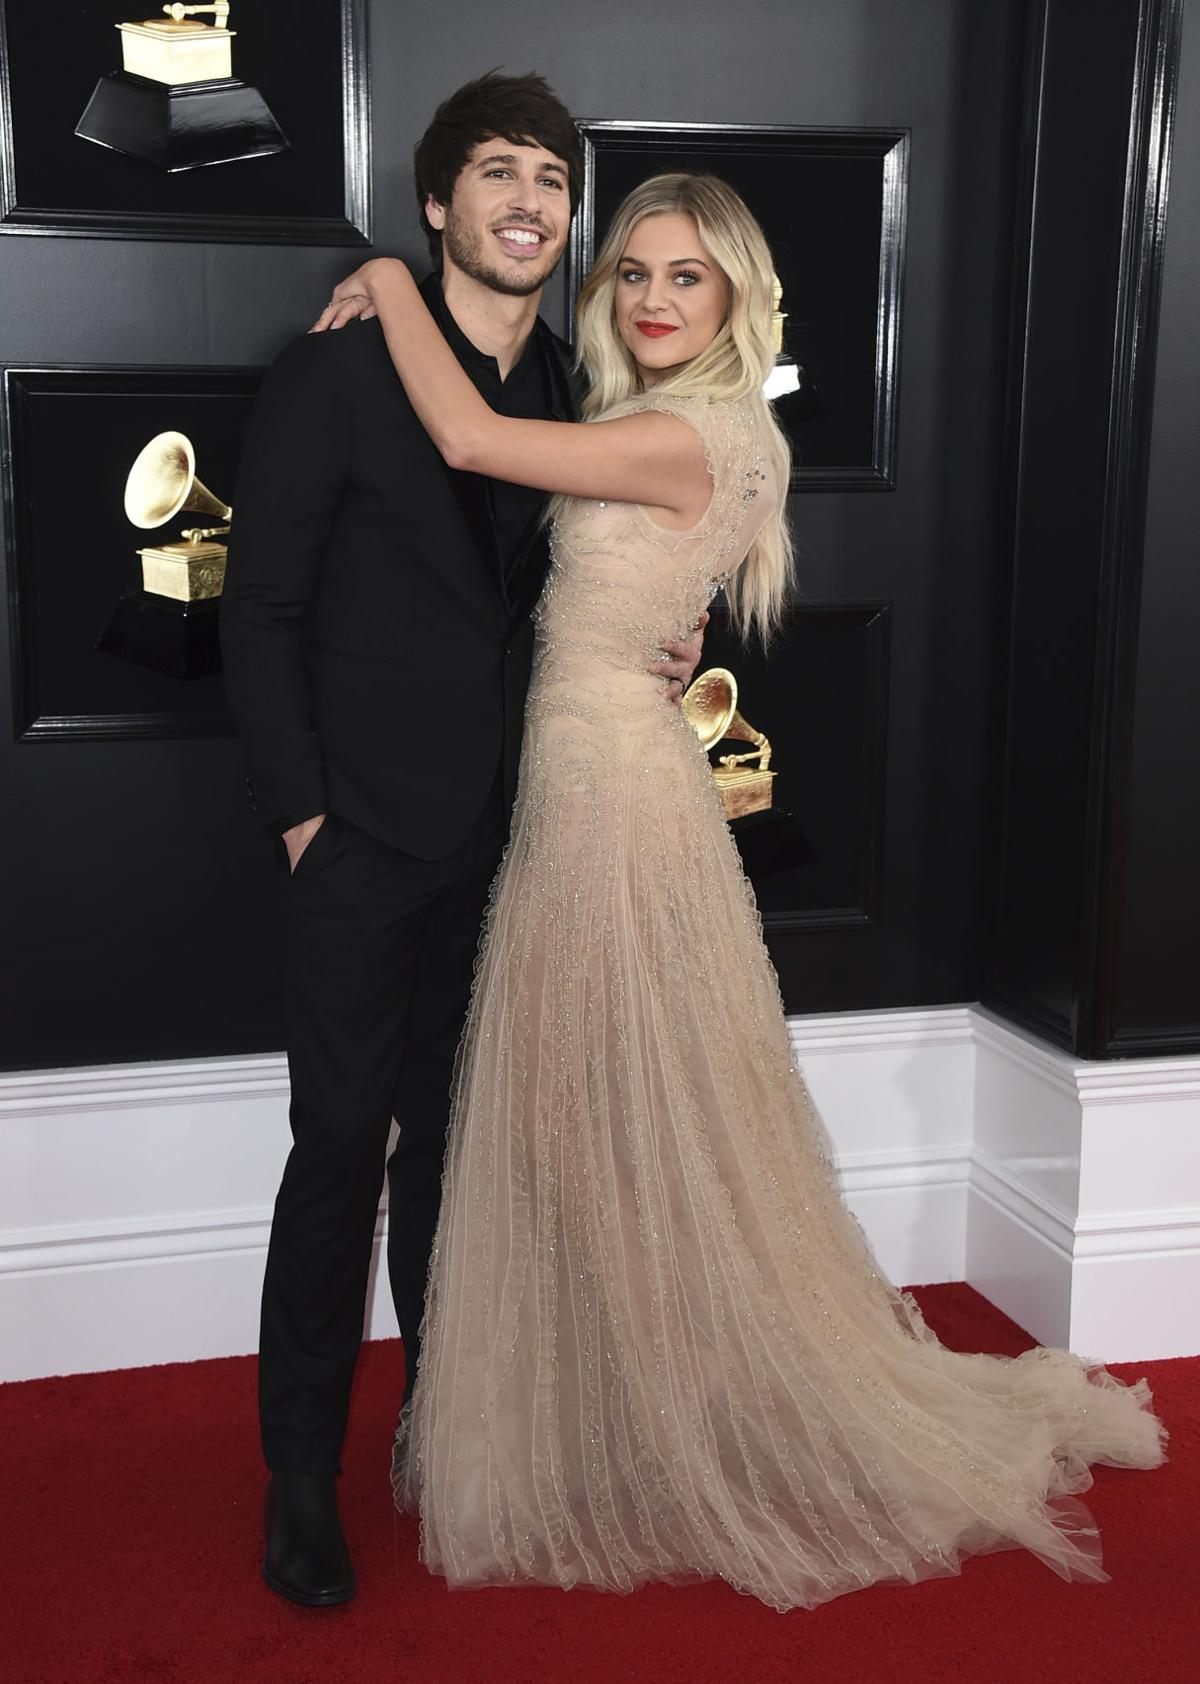 ecd64a0f7be Scenes from the red carpet at the 61st annual Grammy Awards | Music |  news.lee.net